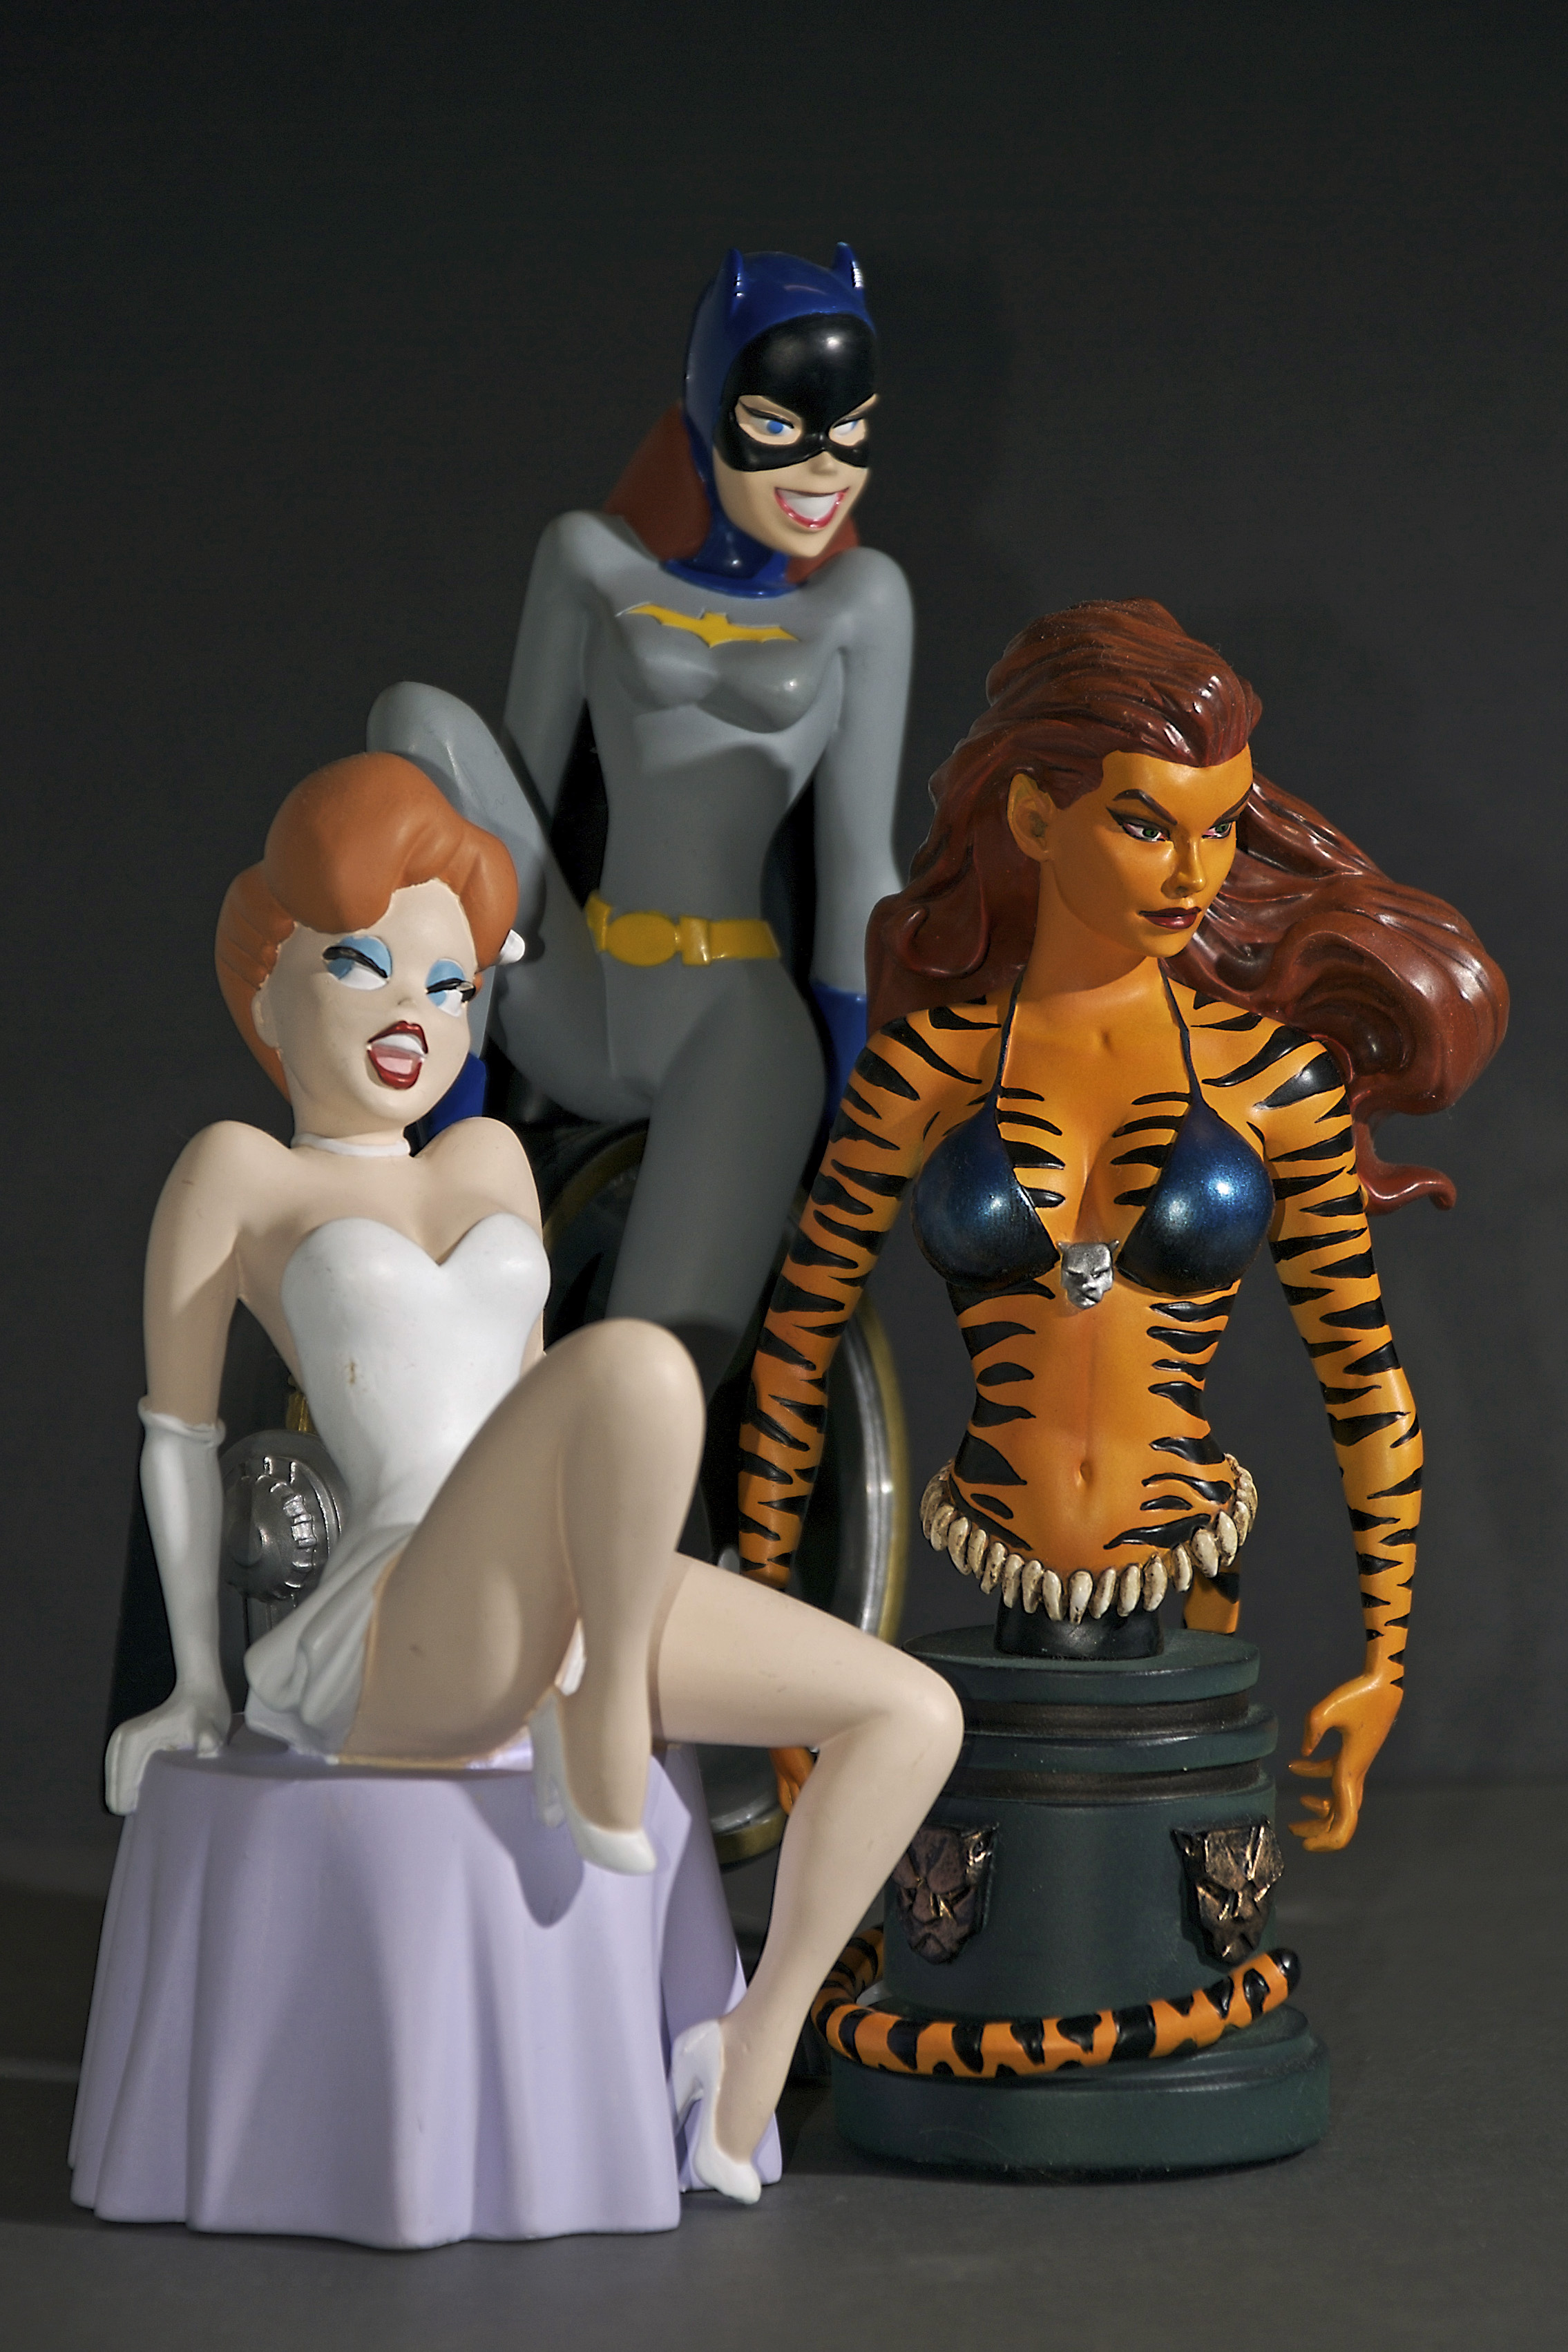 tigra-red-batgirl-statues-fixed.jpg